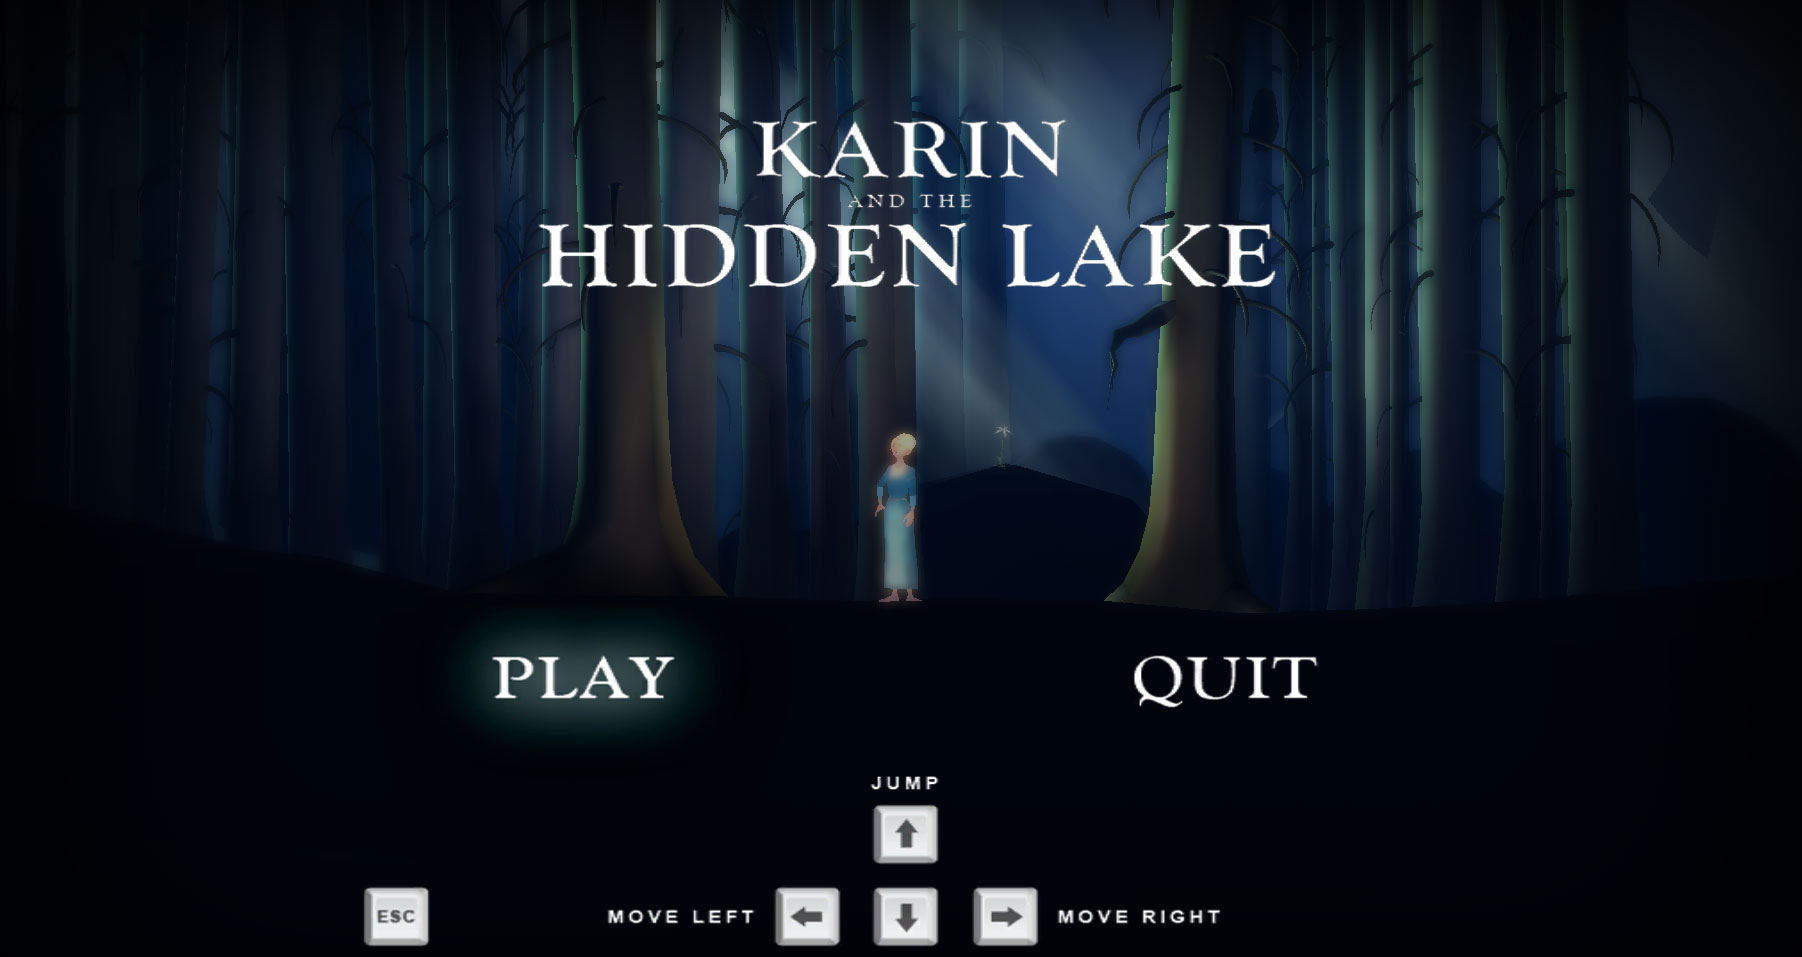 karen-and-the-hidden-lake-poster-DADIU-2009